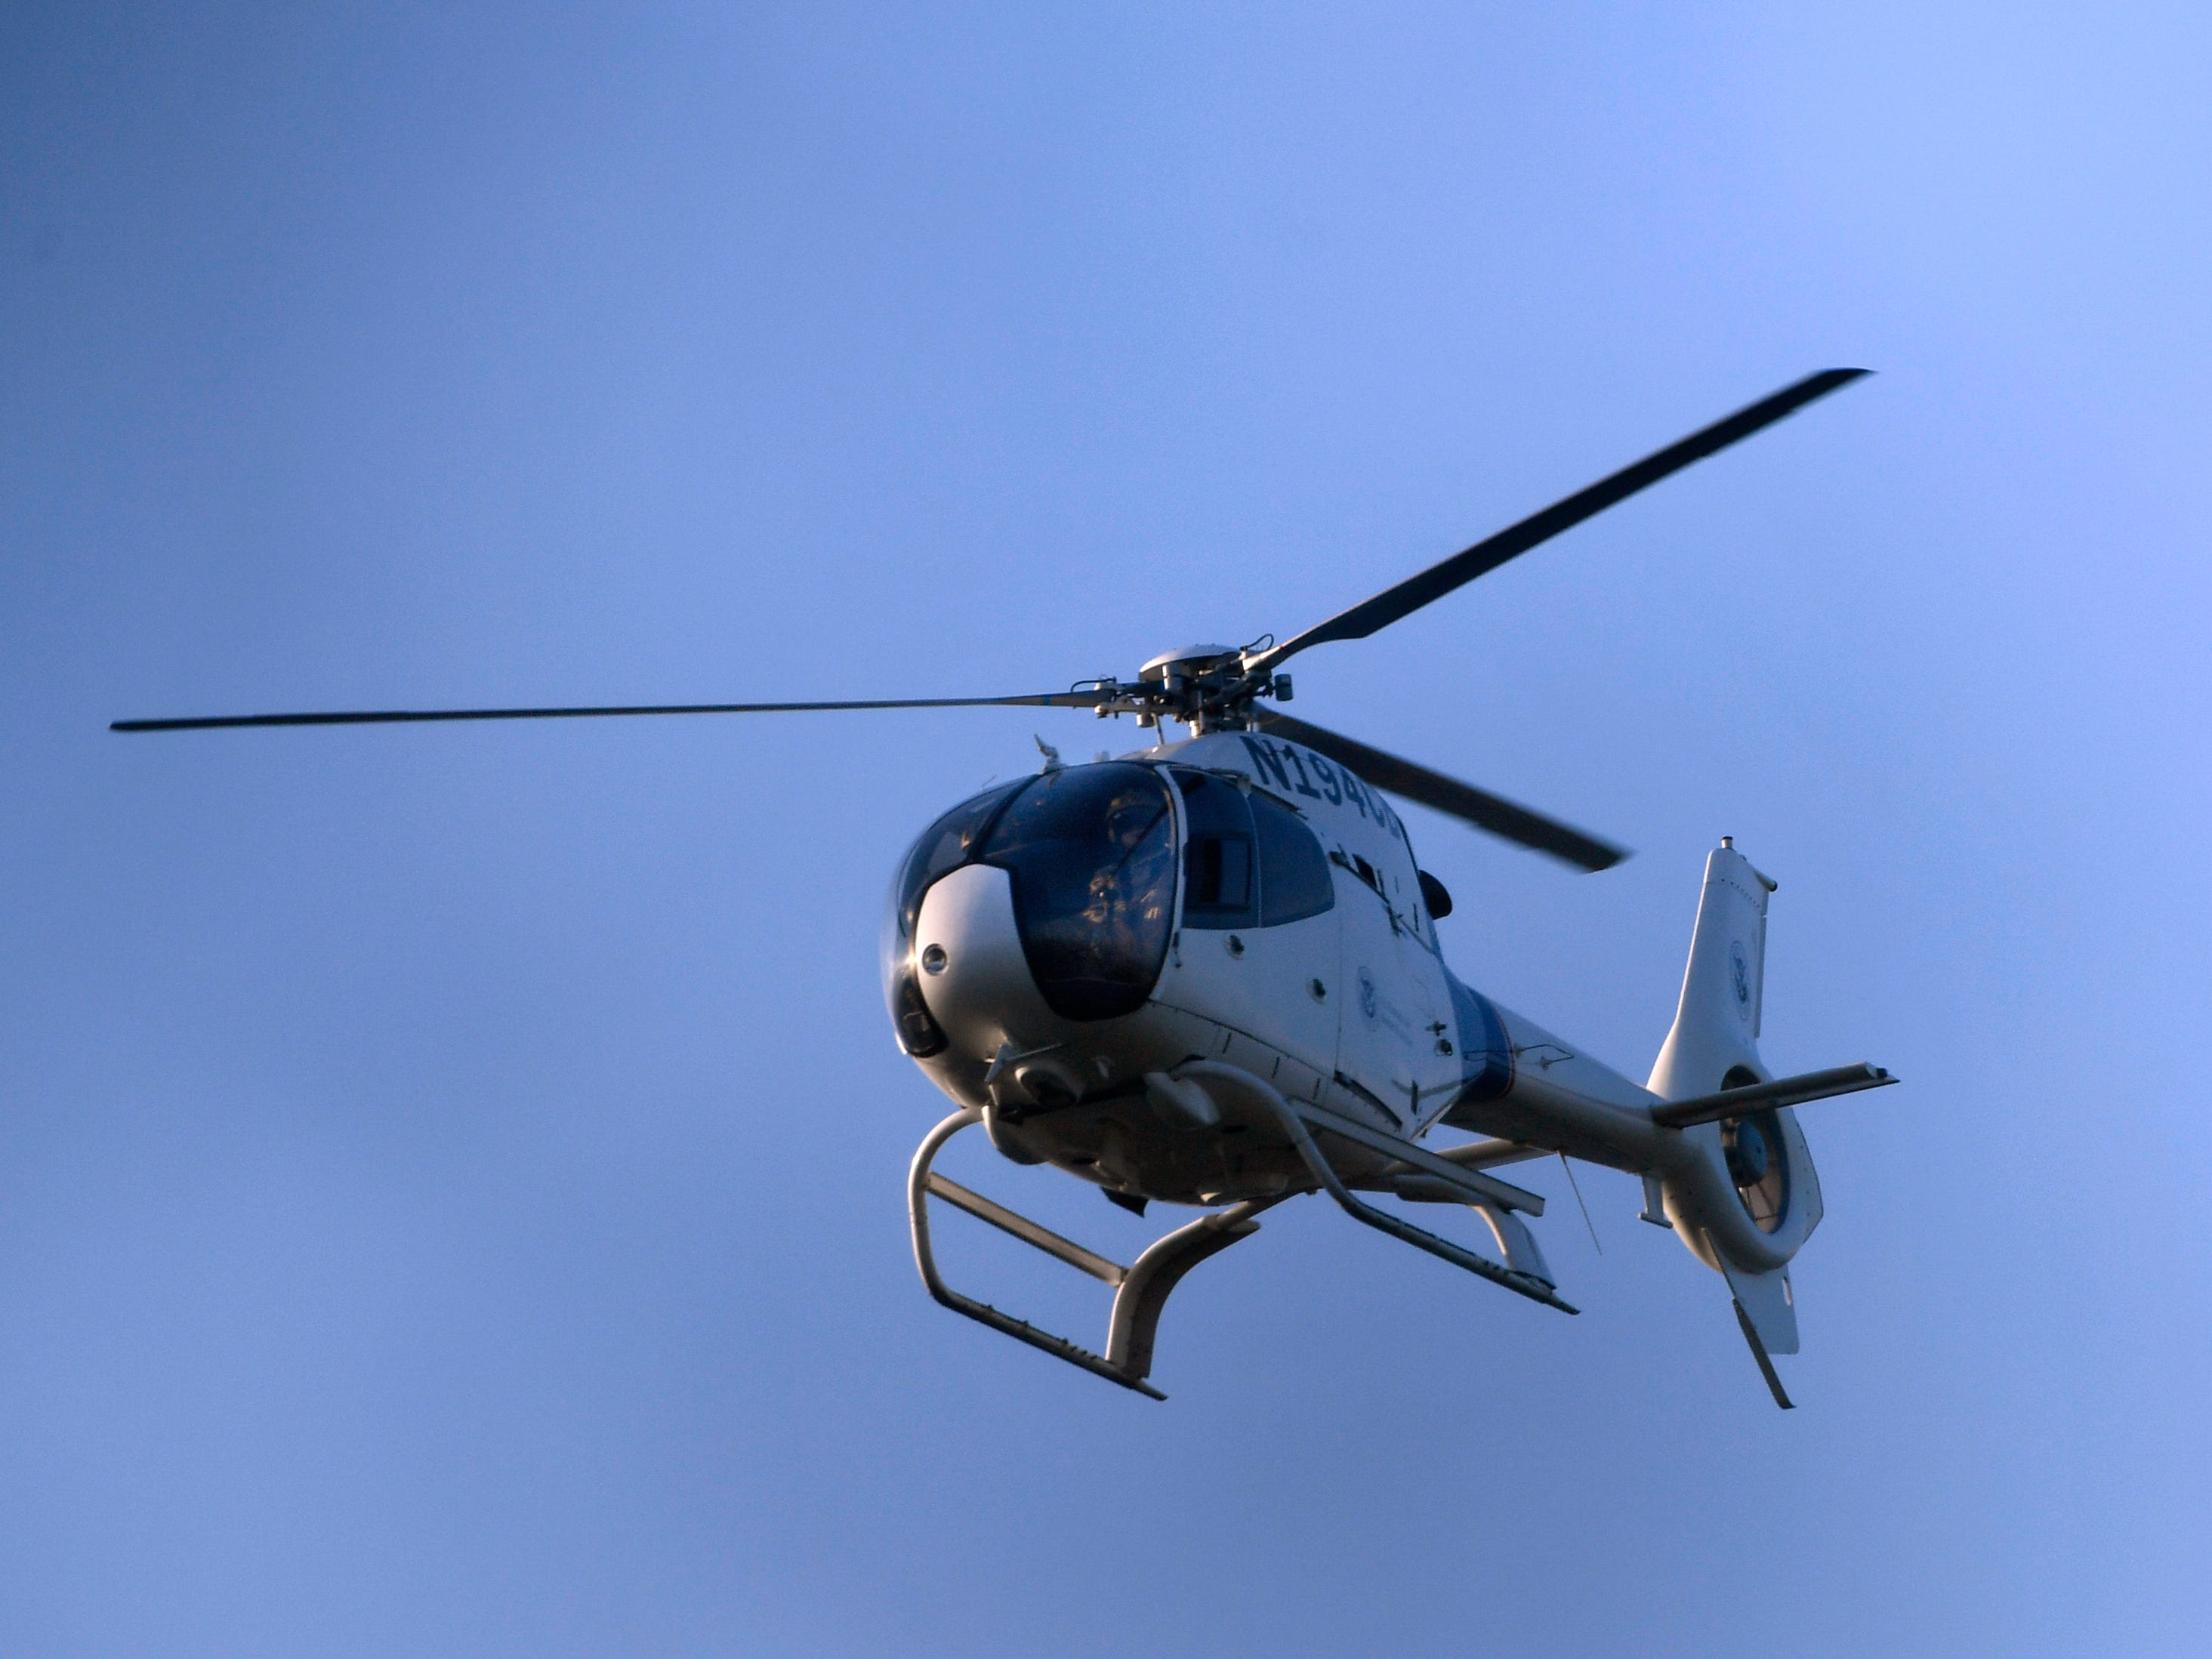 A U.S. Customs and Border Protection helicopter flies over the American side of the international border between Piedras Negras and Eagle Pass Wednesday Feb. 6, 2019. A caravan of Central American migrants has arrived in Piedras Negras and border law enforcement officials have increased their presence in response.